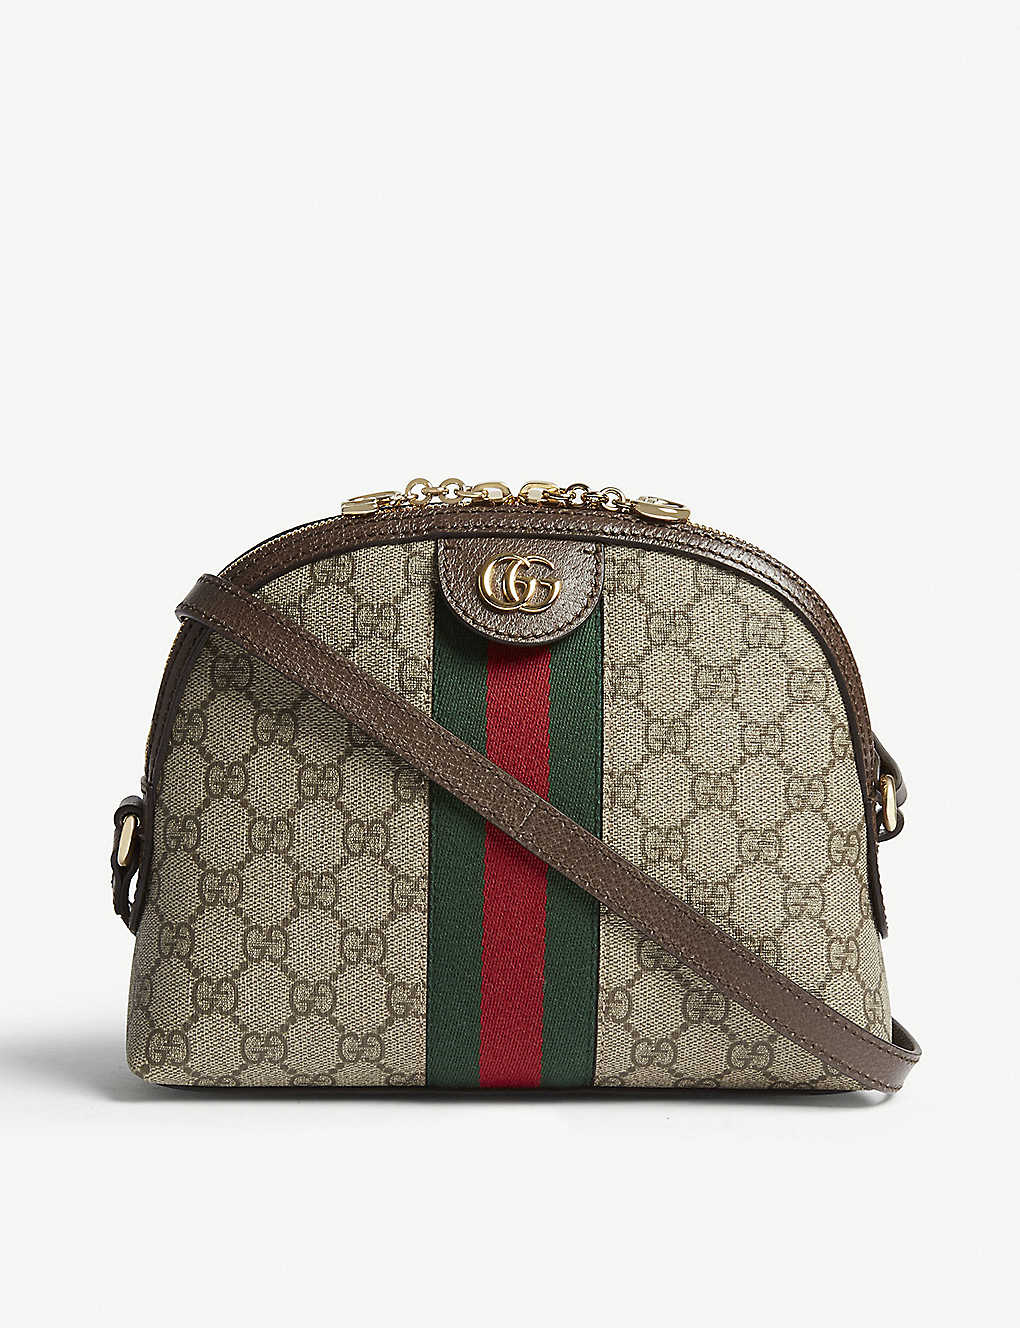 b8a69bf59 GUCCI - Ophidia GG Supreme small shoulder bag | Selfridges.com